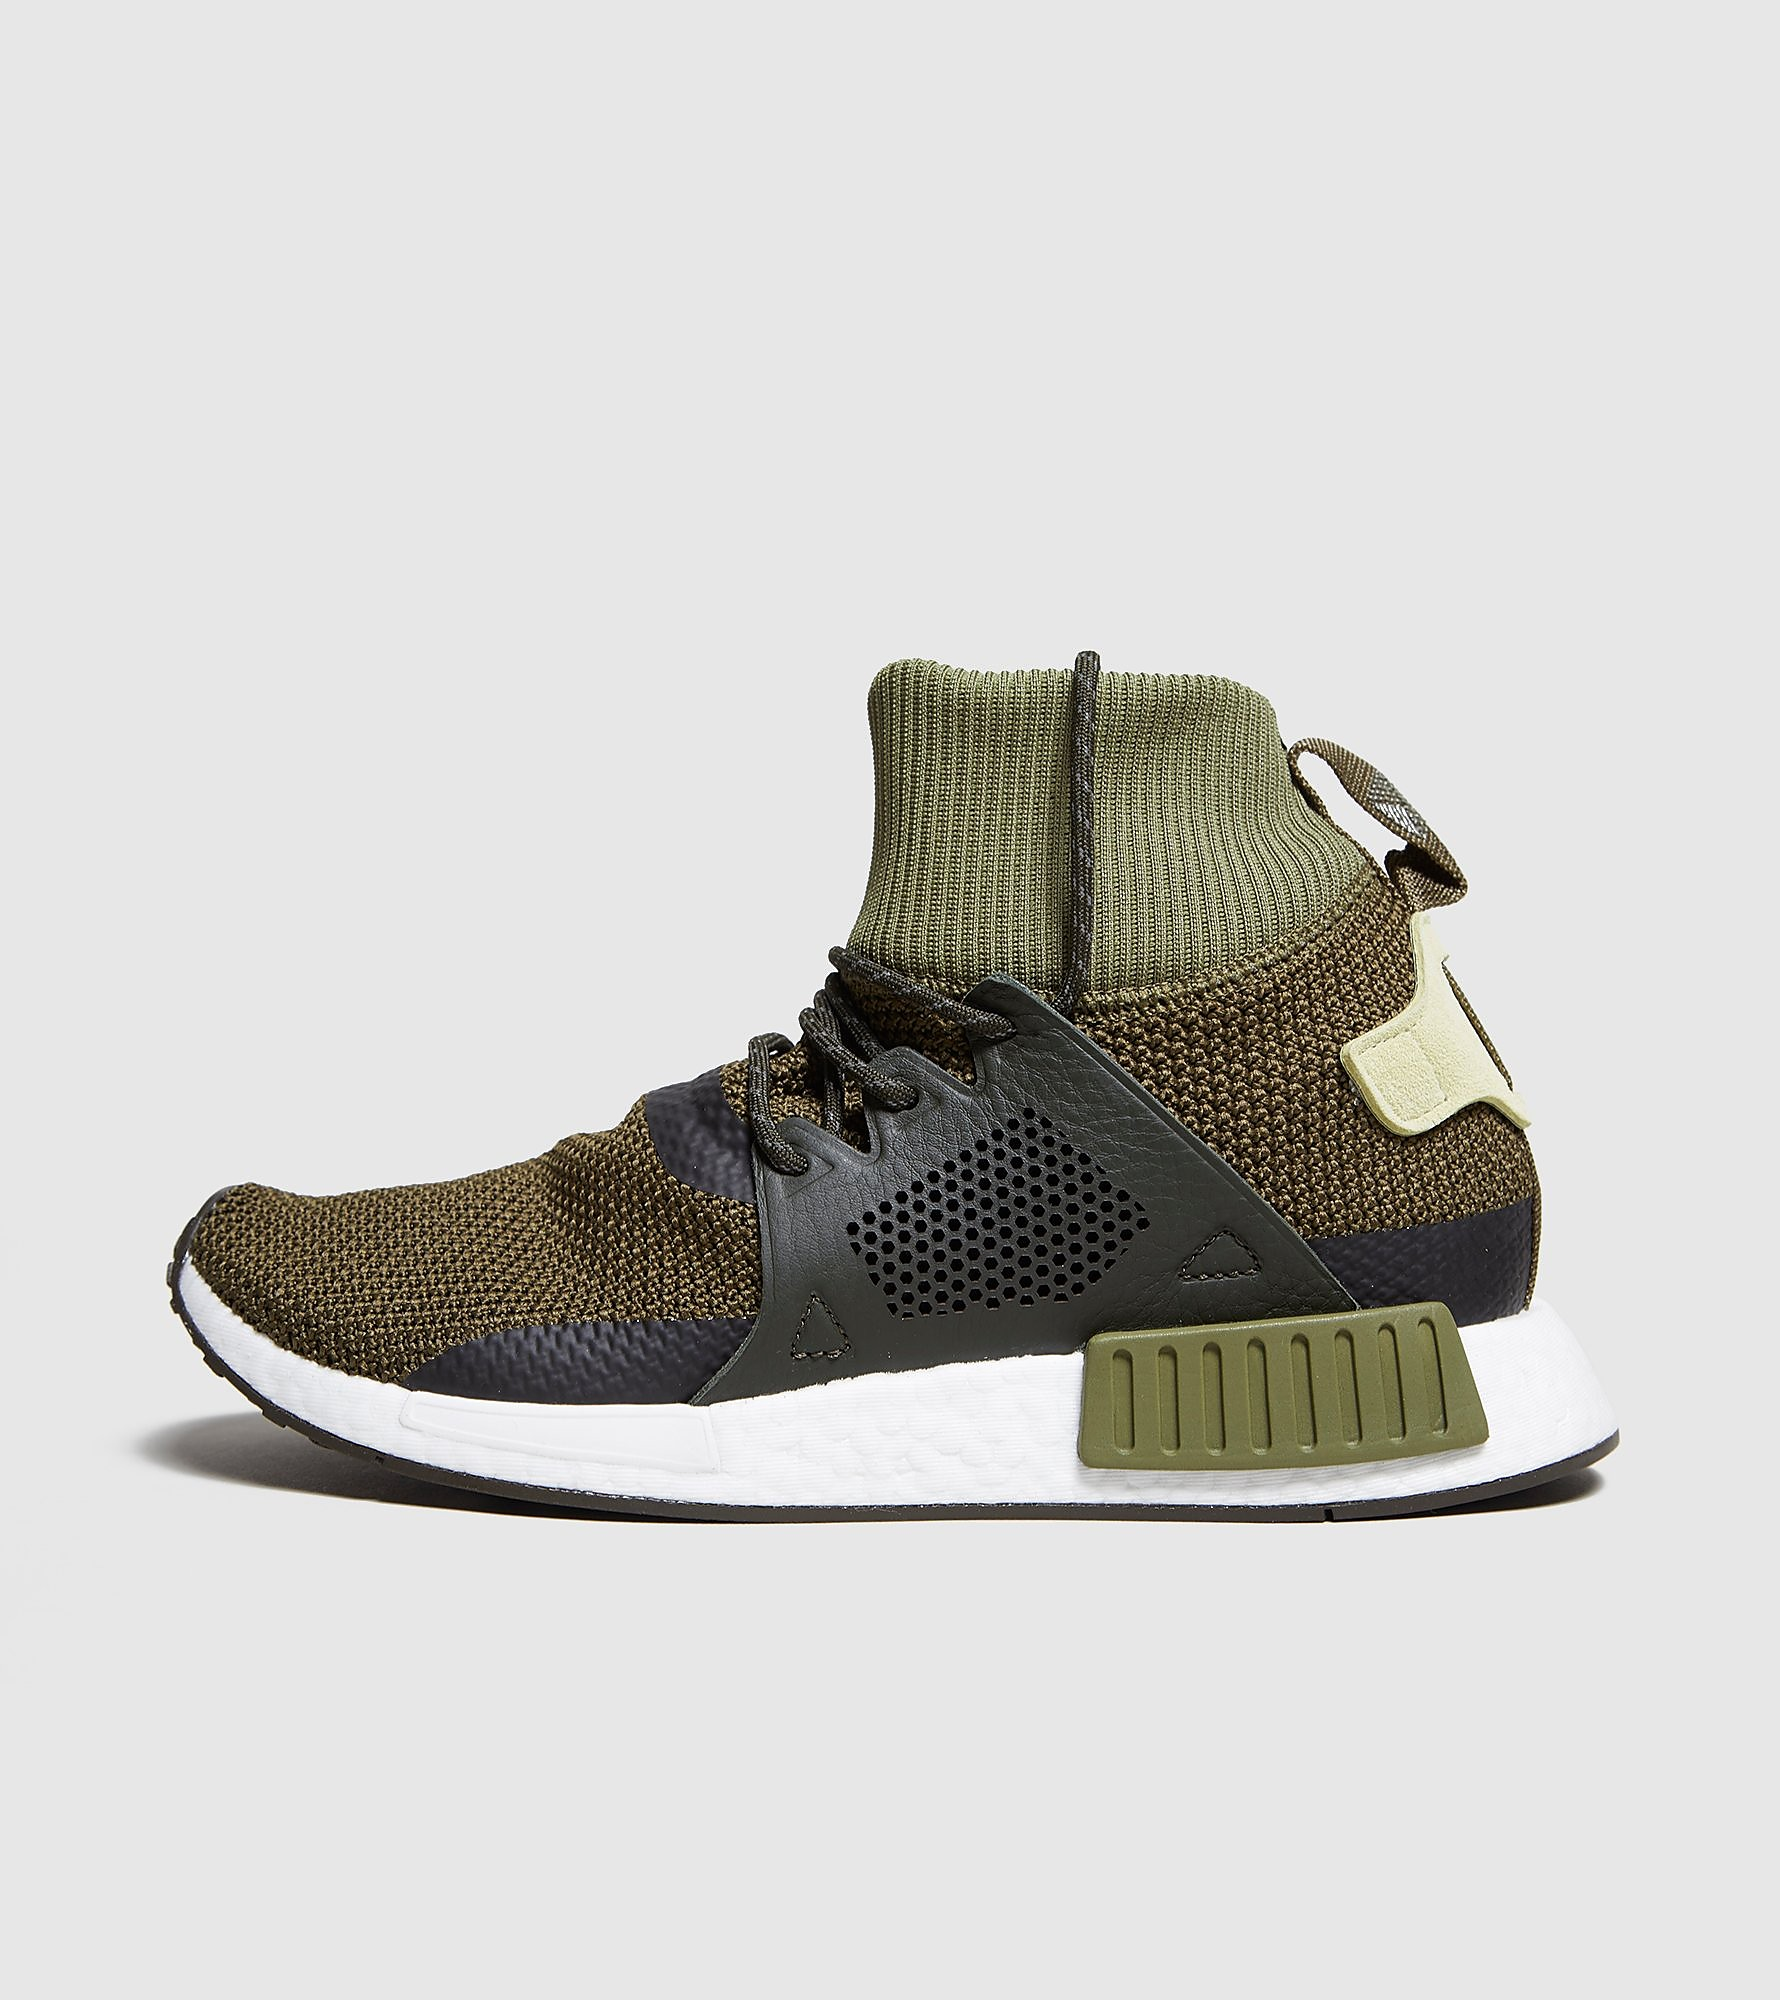 adidas Originals NMD XR1 Winter